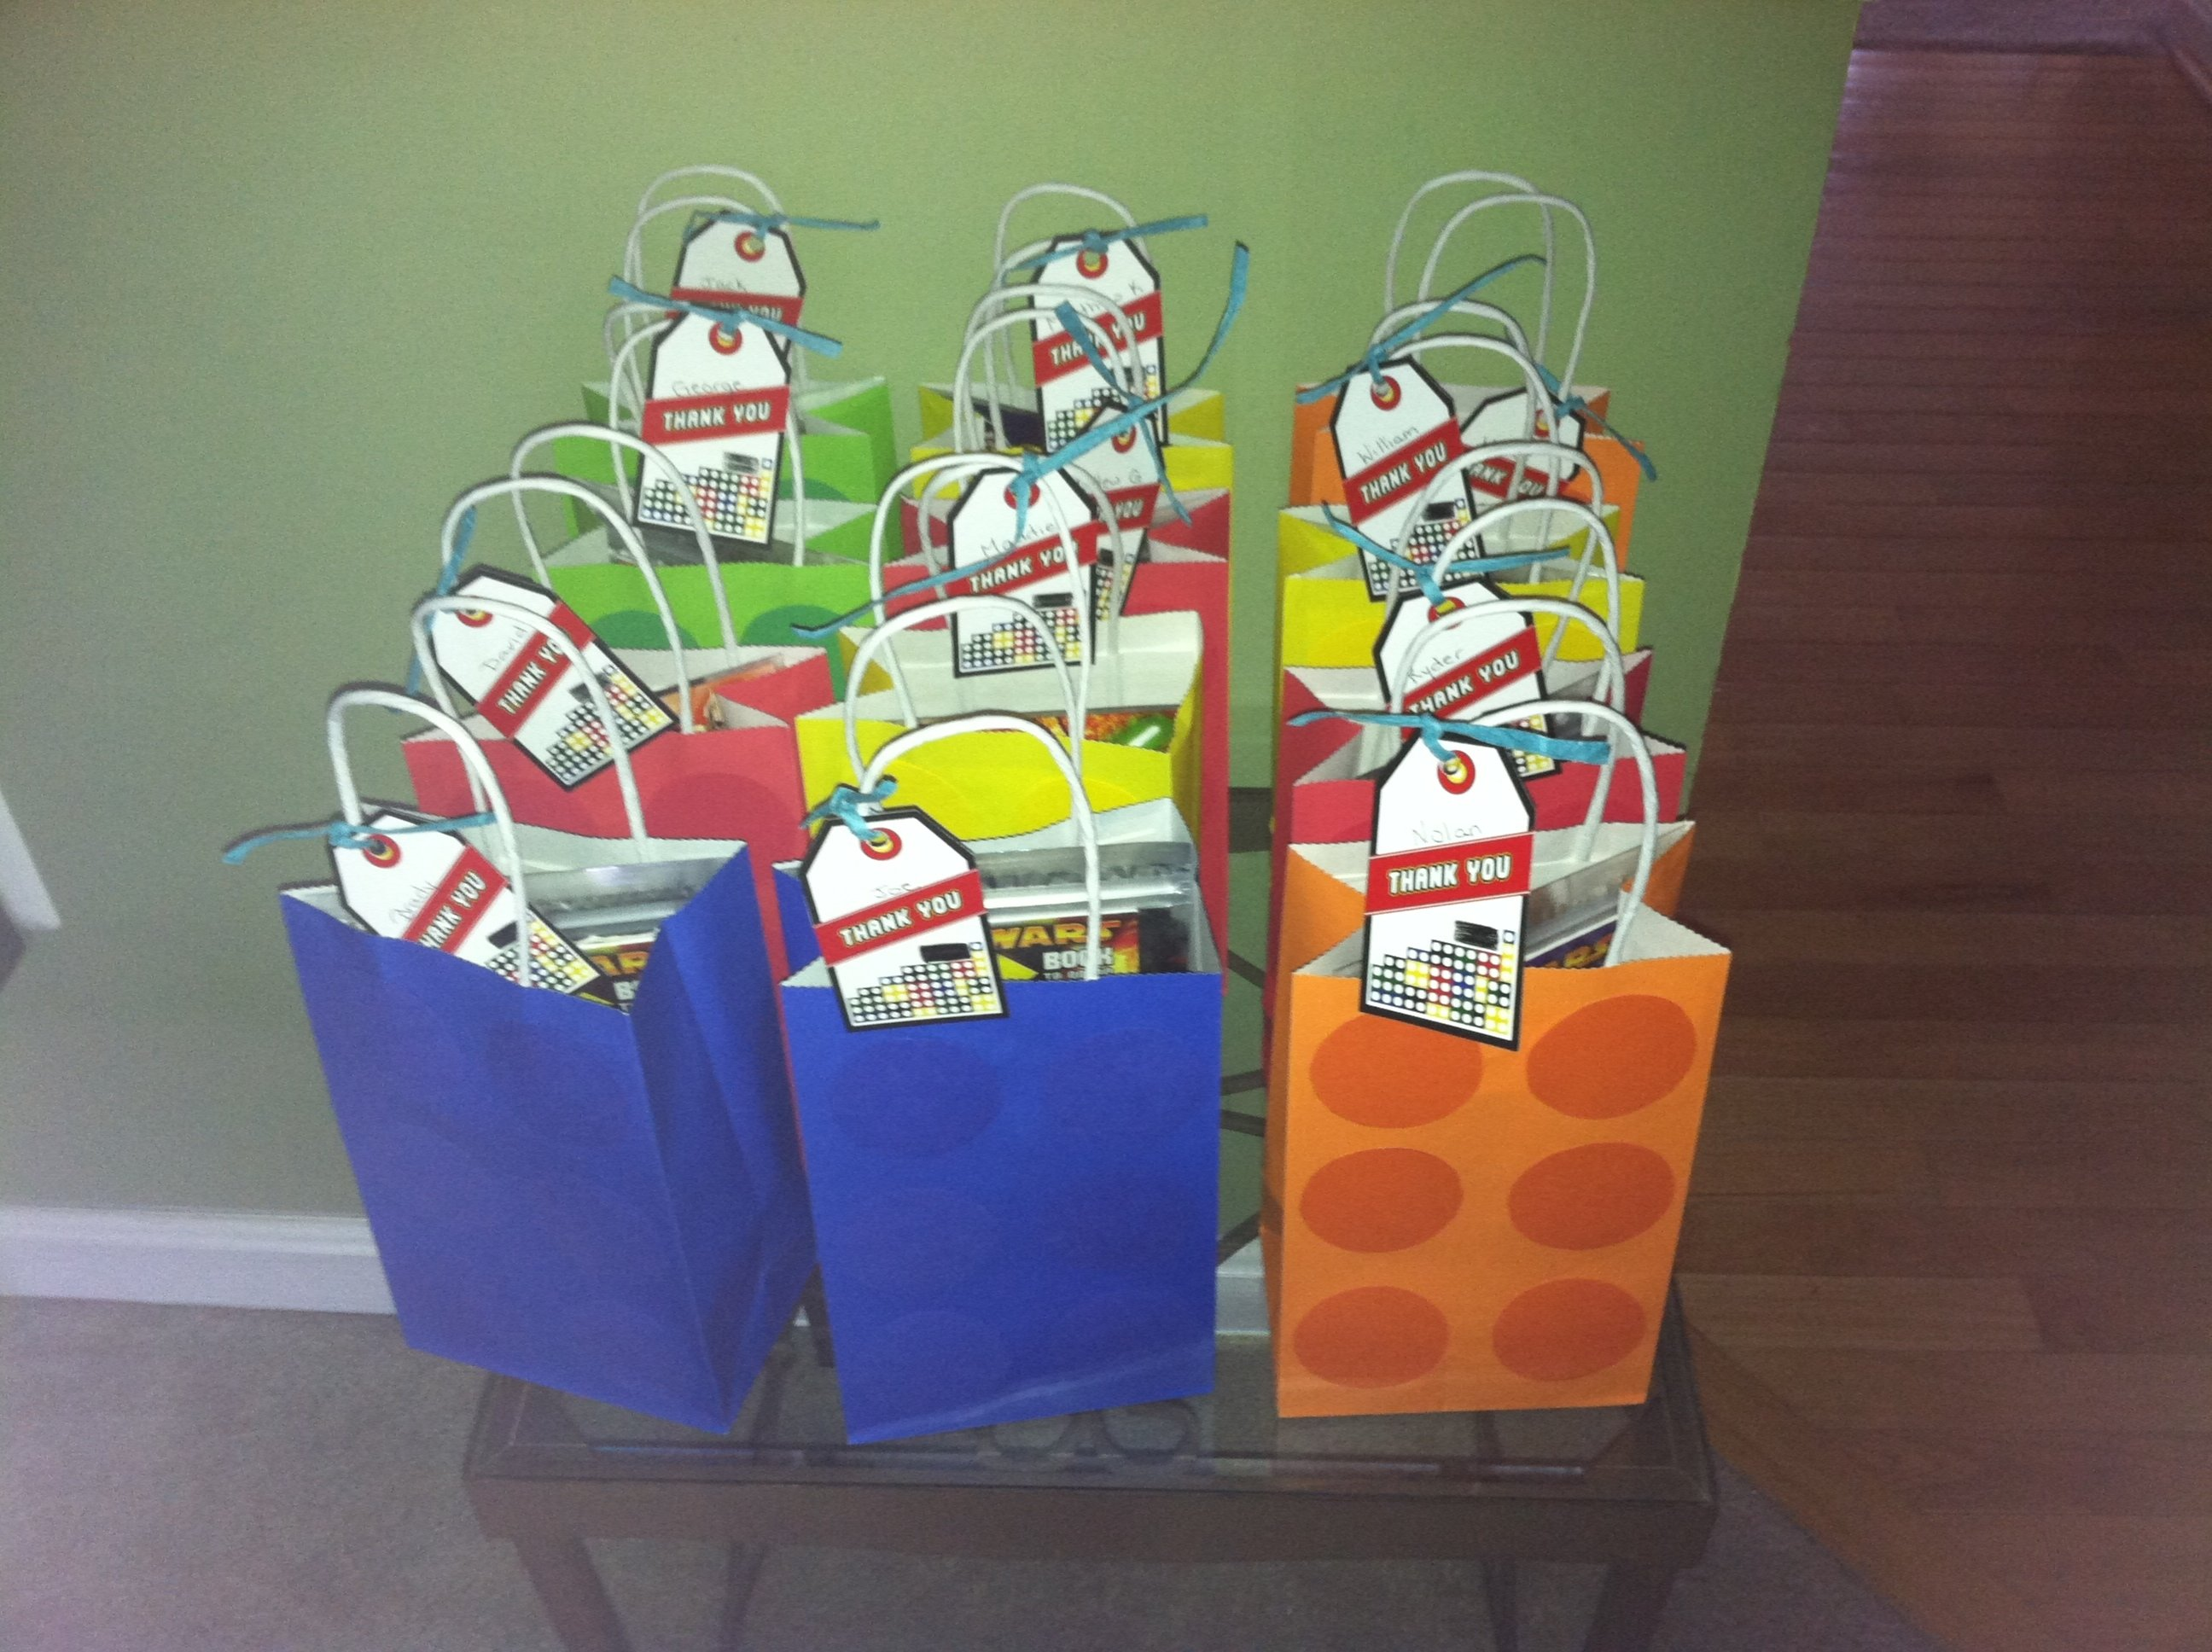 10 Lovable Gift Bag Ideas For Adults 59 goodie bag gift ideas kid wedding favor 2020